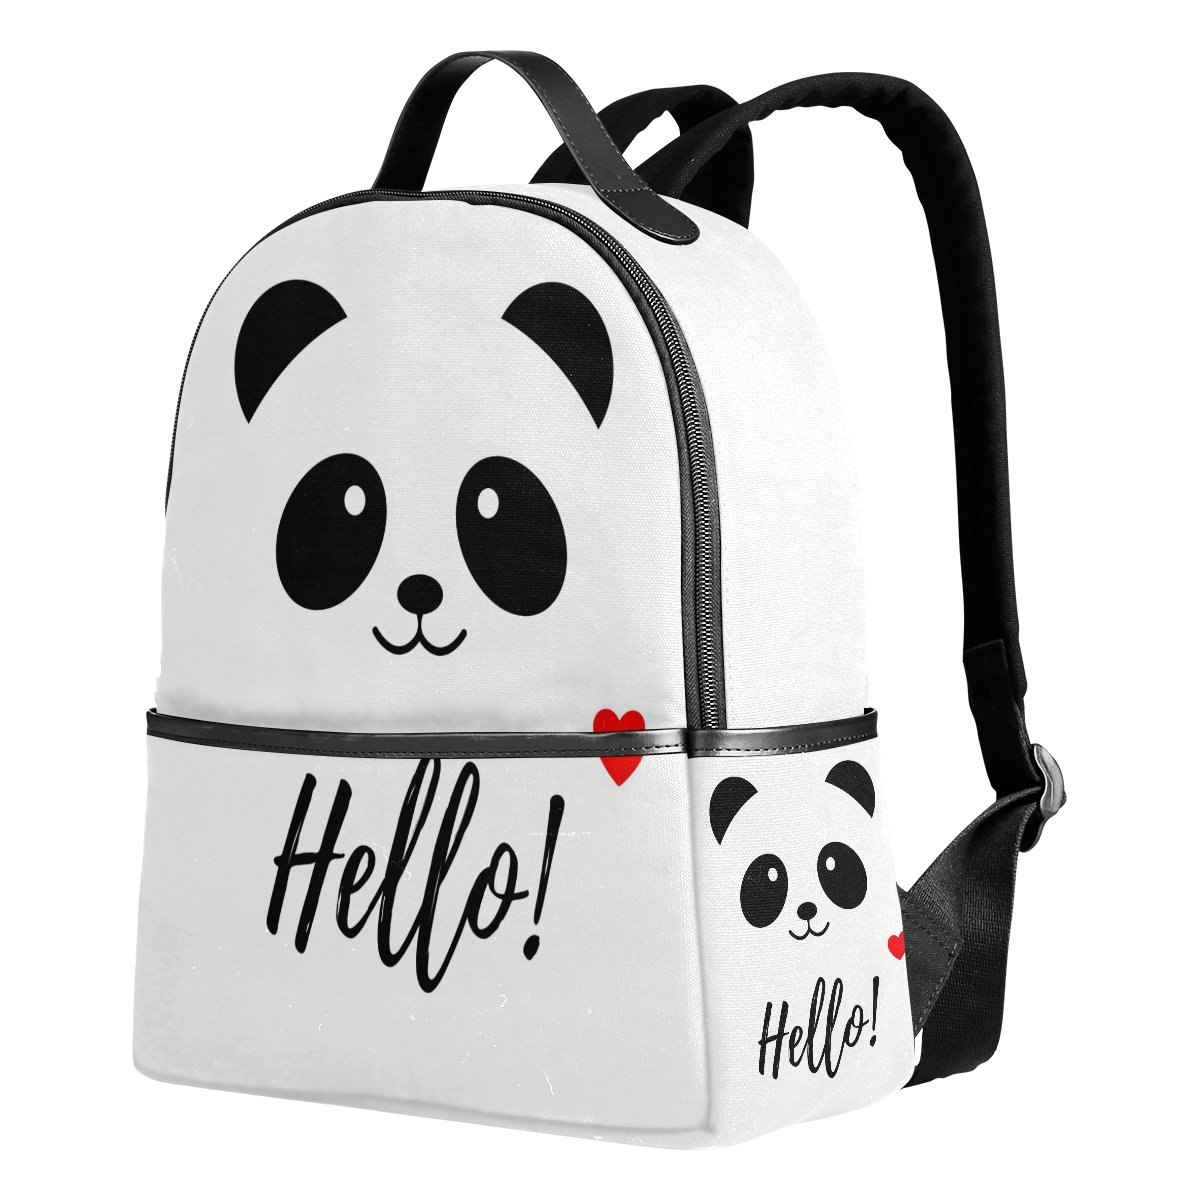 Use4 Hello Panda Love Heart Polyester Backpack School Travel Bag by ALAZA (Image #1)